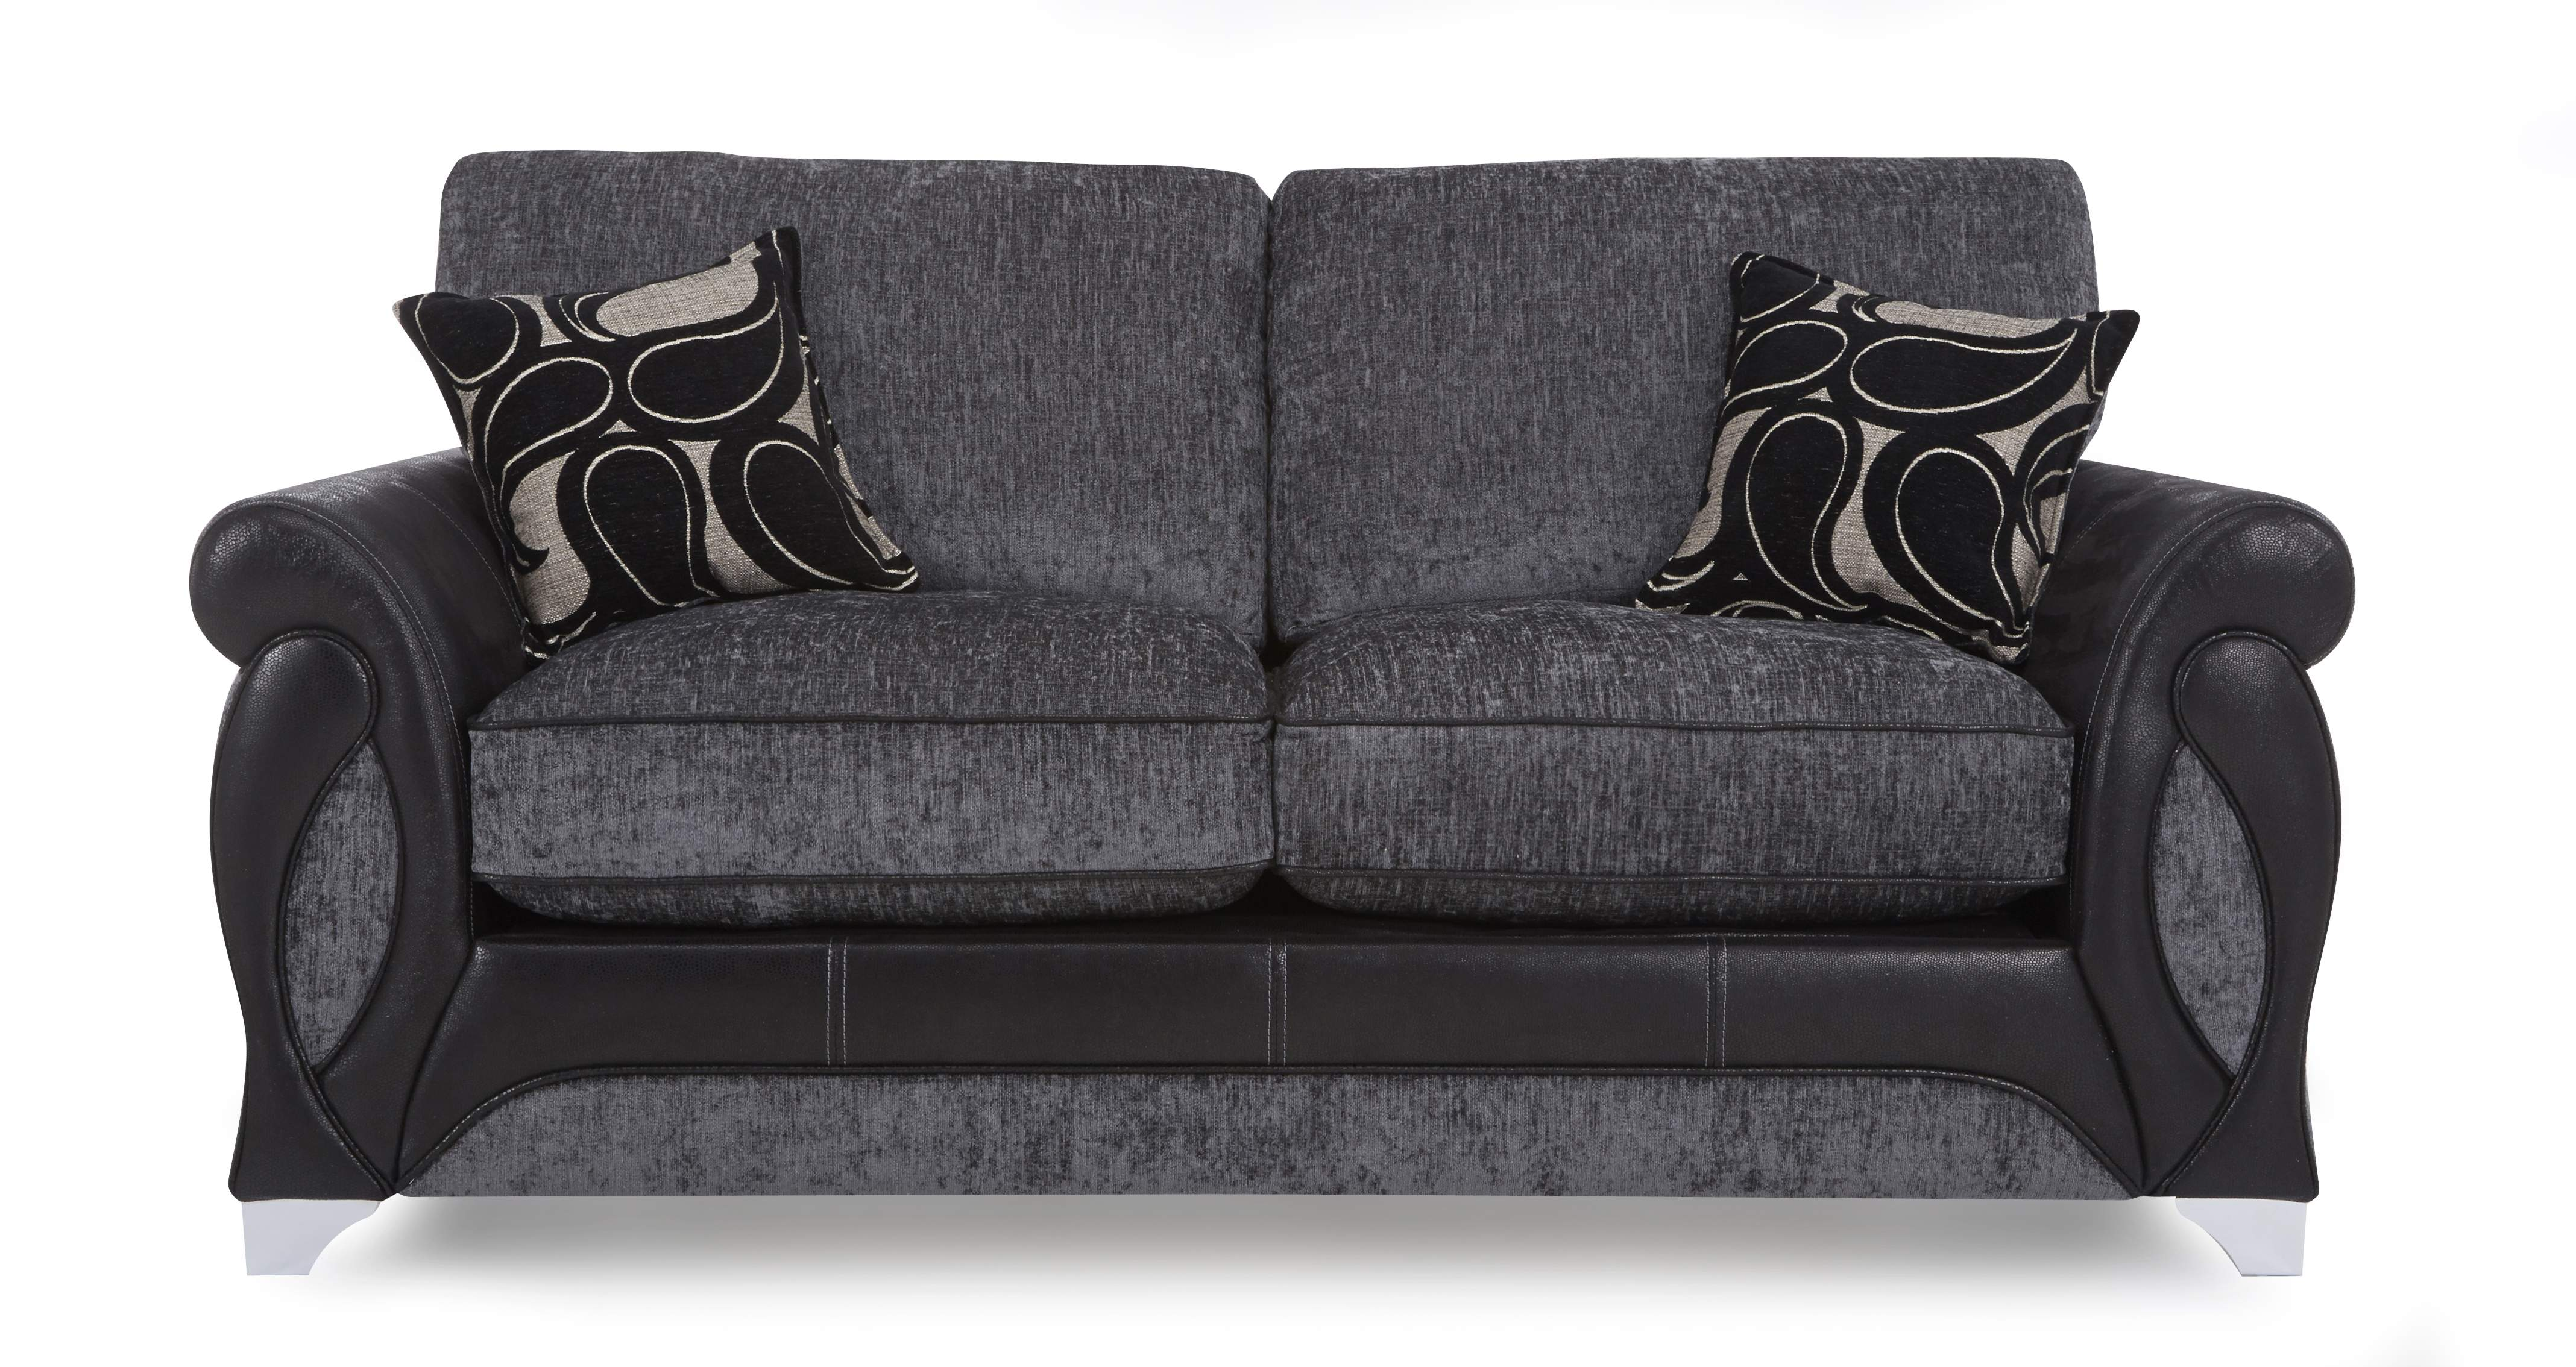 Dfs Myriad Set Incl 2 Seater Charcoal Sofa Bed And Chair